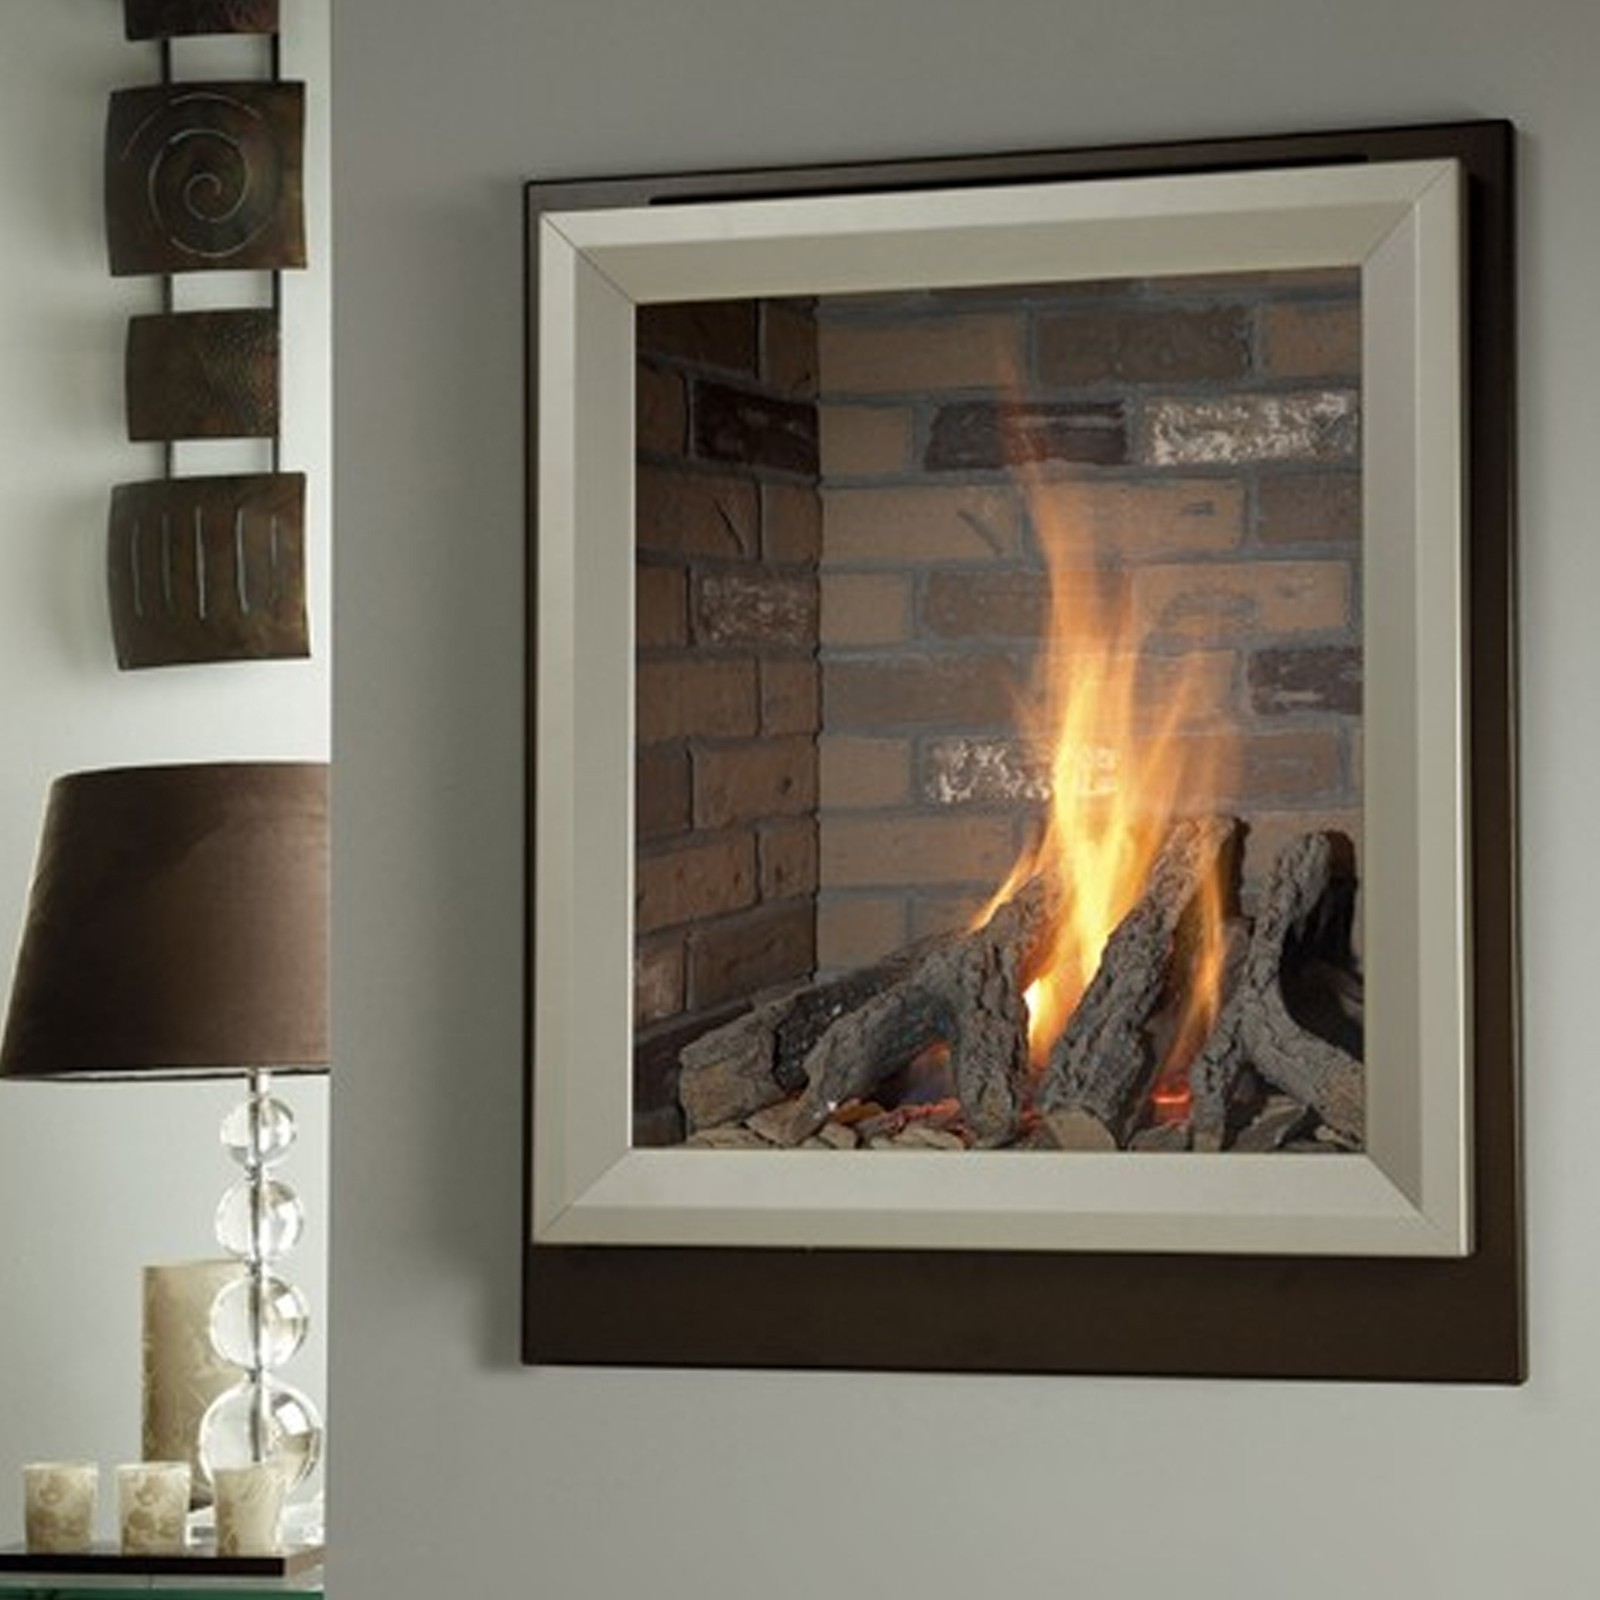 Modern Fire Verine Meridian He High Efficiency Gas Fire